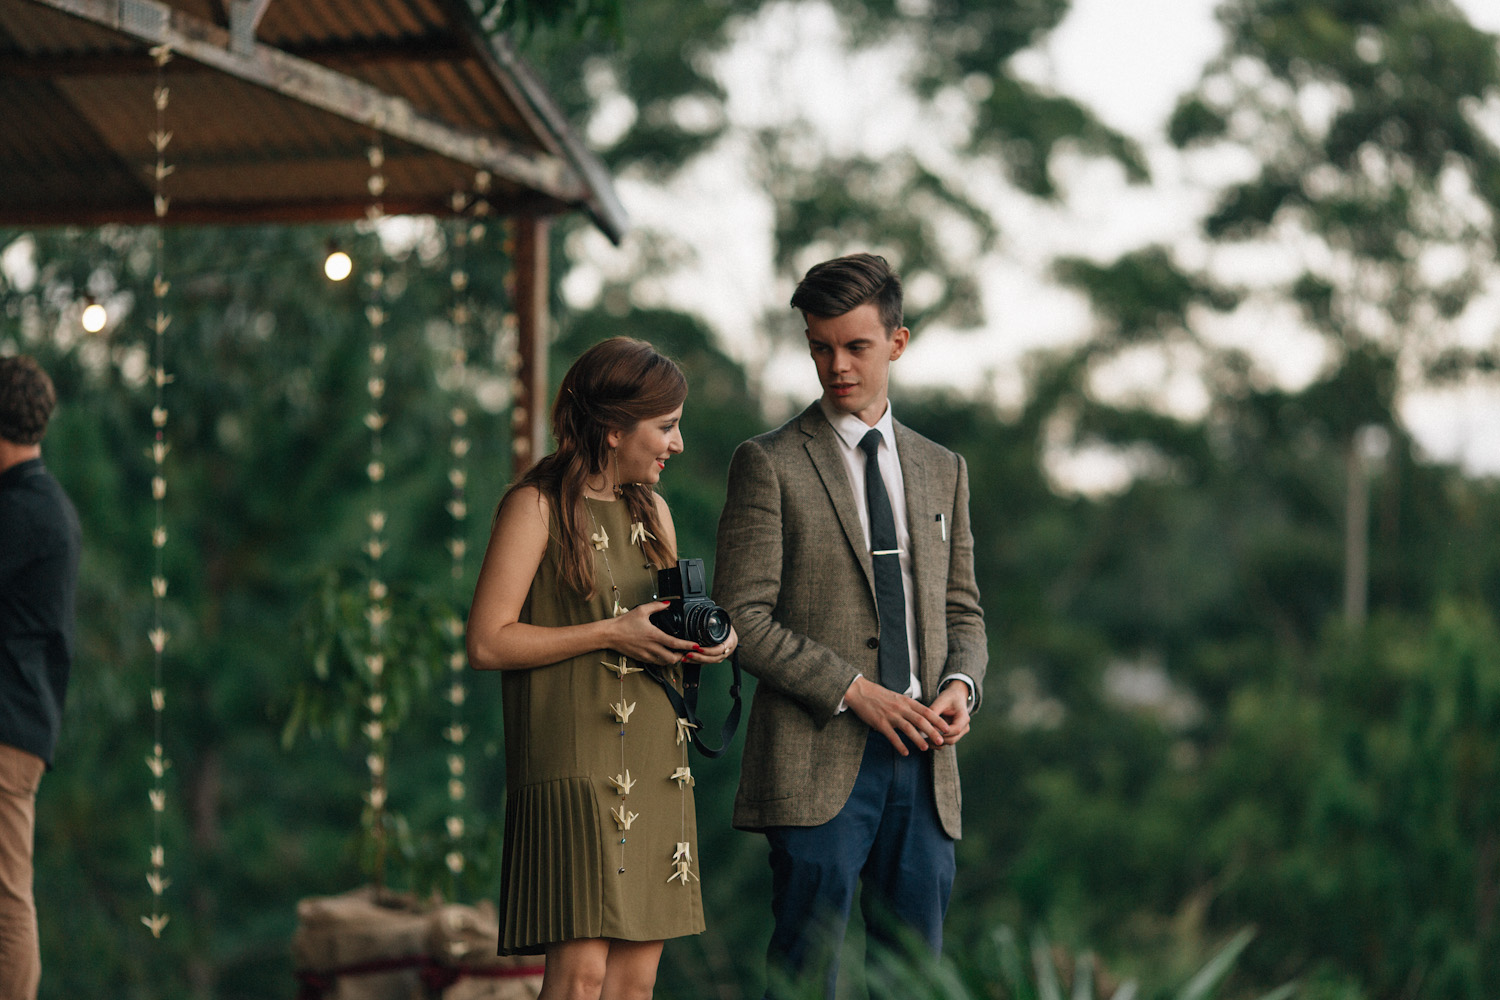 jazzyconnorsphotography_emily&lachlan227.jpg